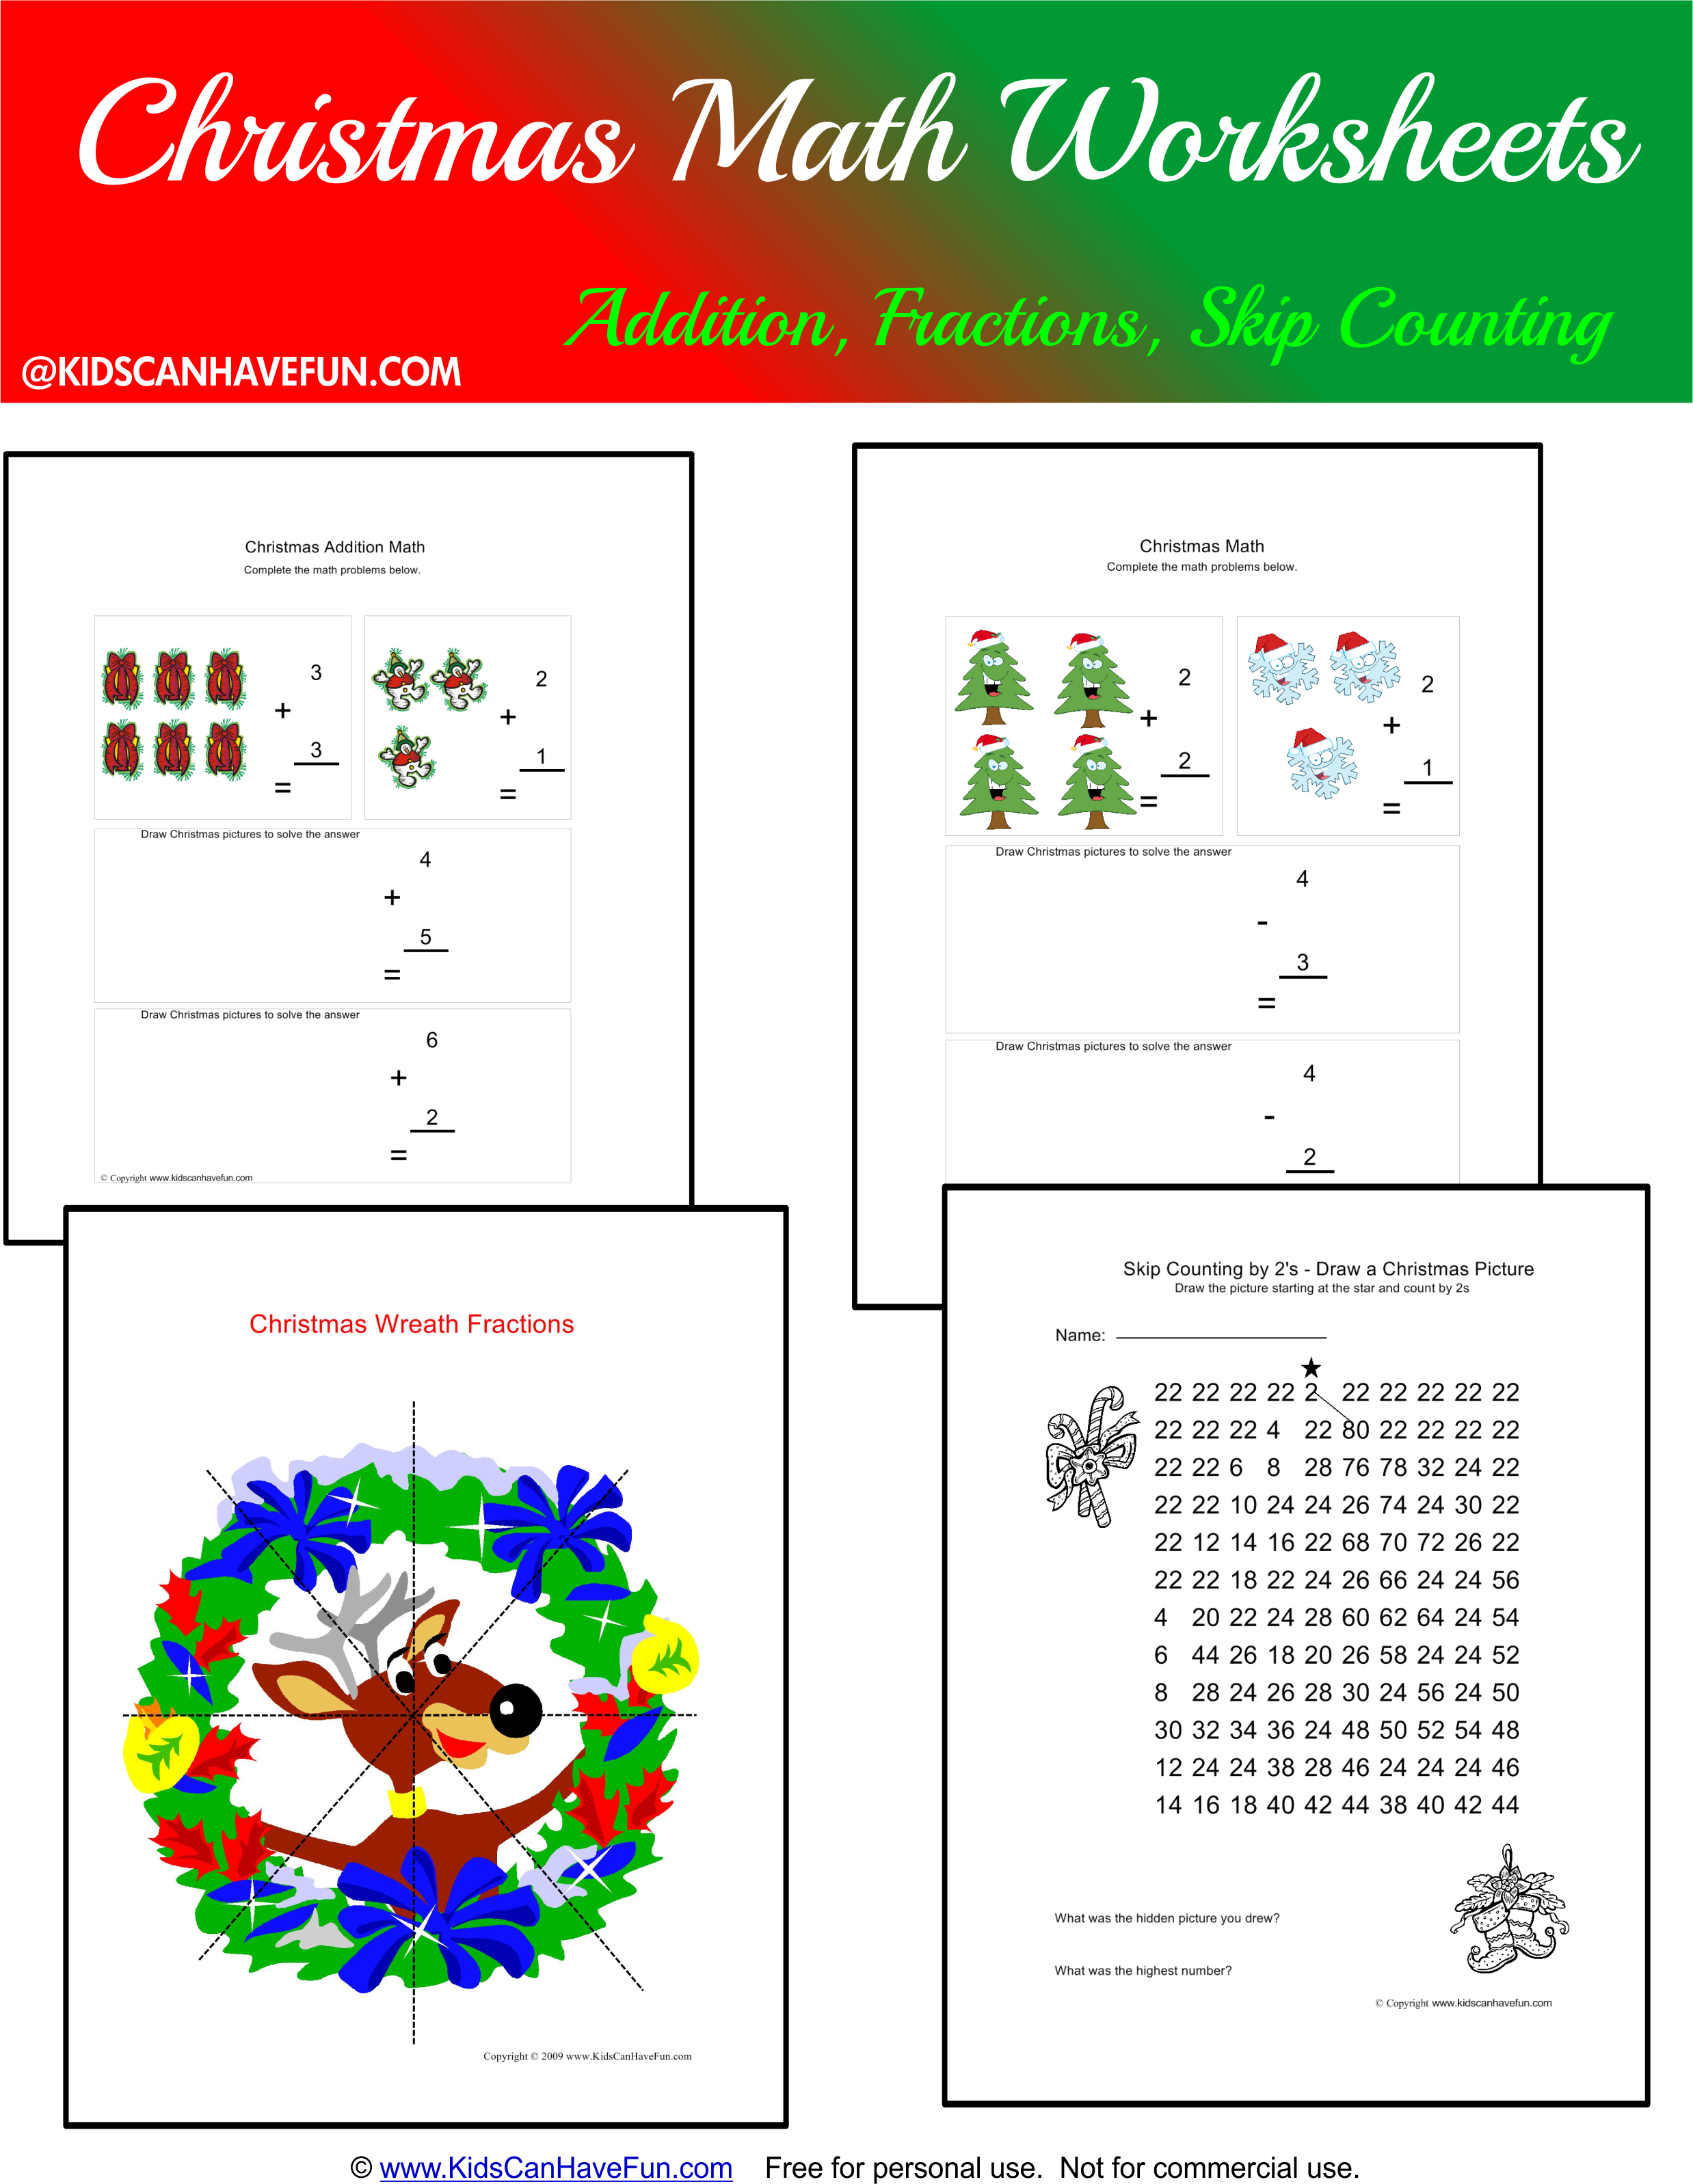 worksheet Free Christmas Math Worksheets free christmas math worksheets for the holidays httpwww kidscanhavefun com